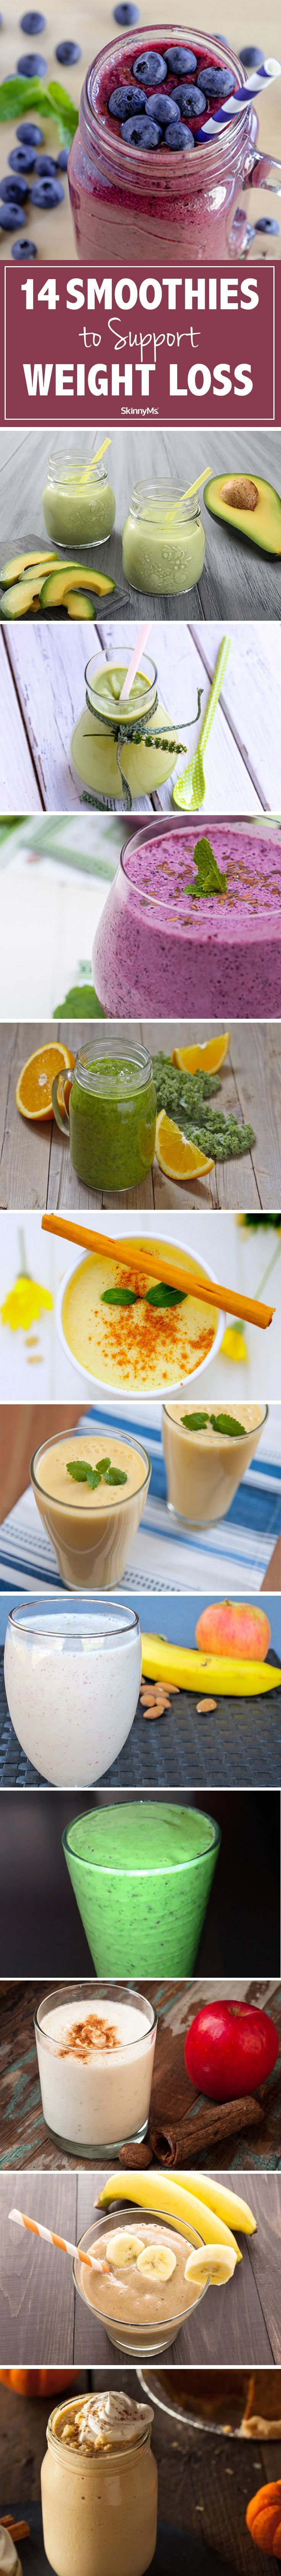 Try these 14 Smoothies to Support Weight Loss!